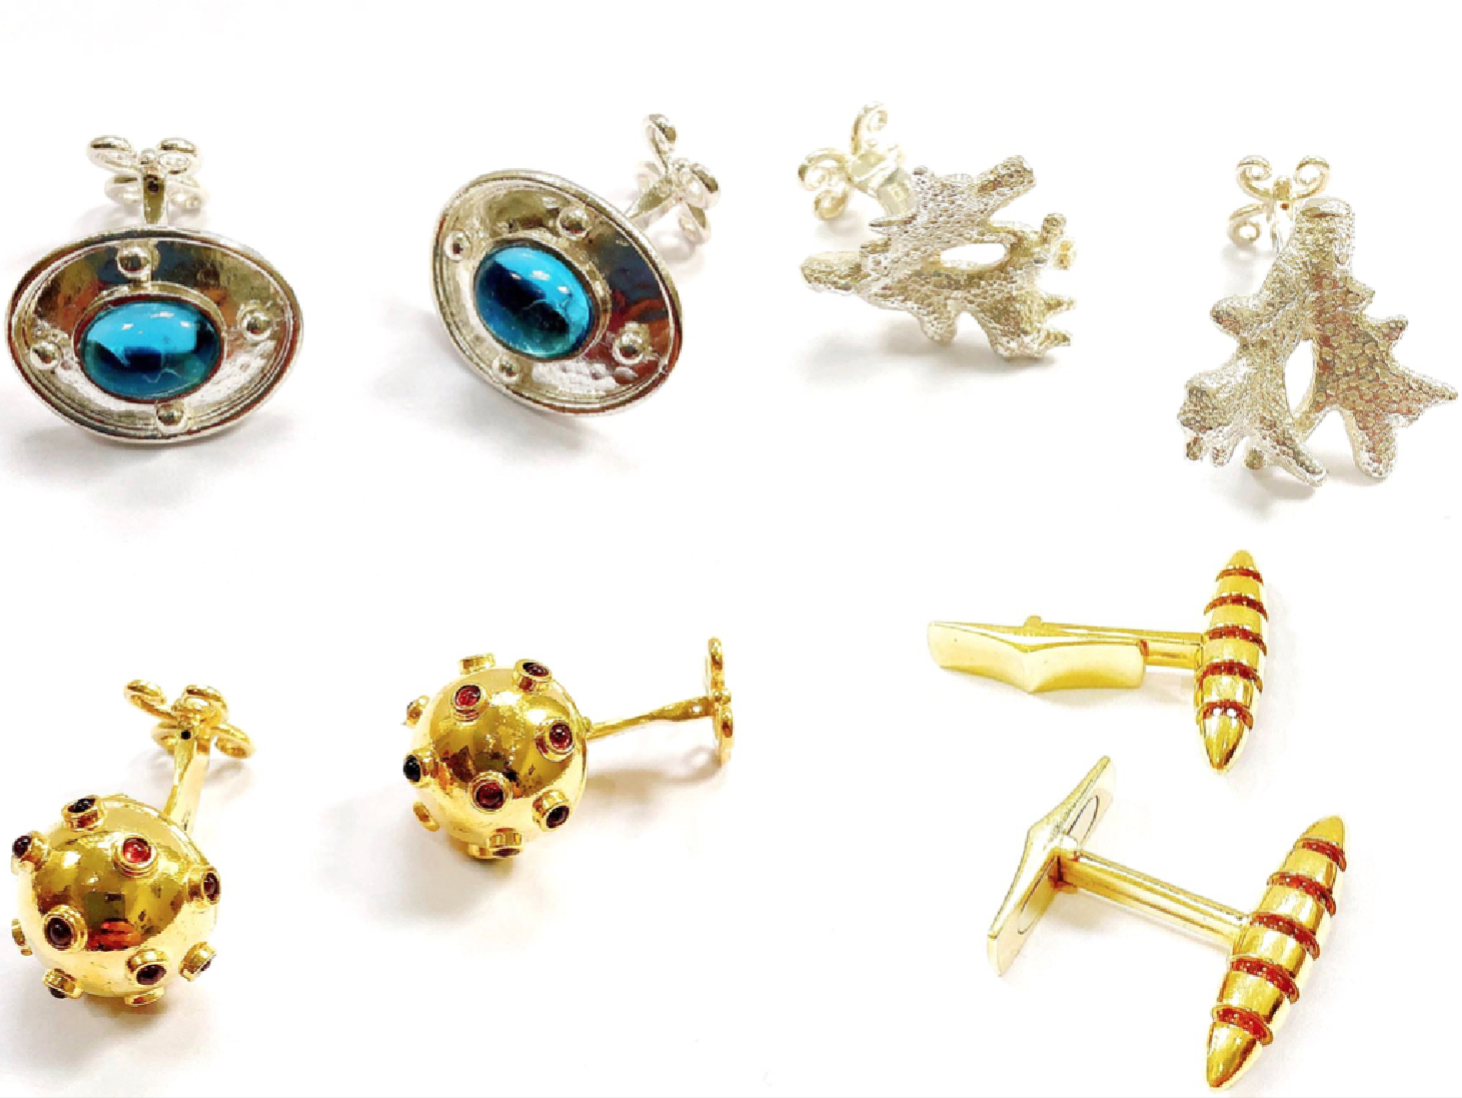 New in for Christmas. Click on the image to discover my cufflinks collection today.